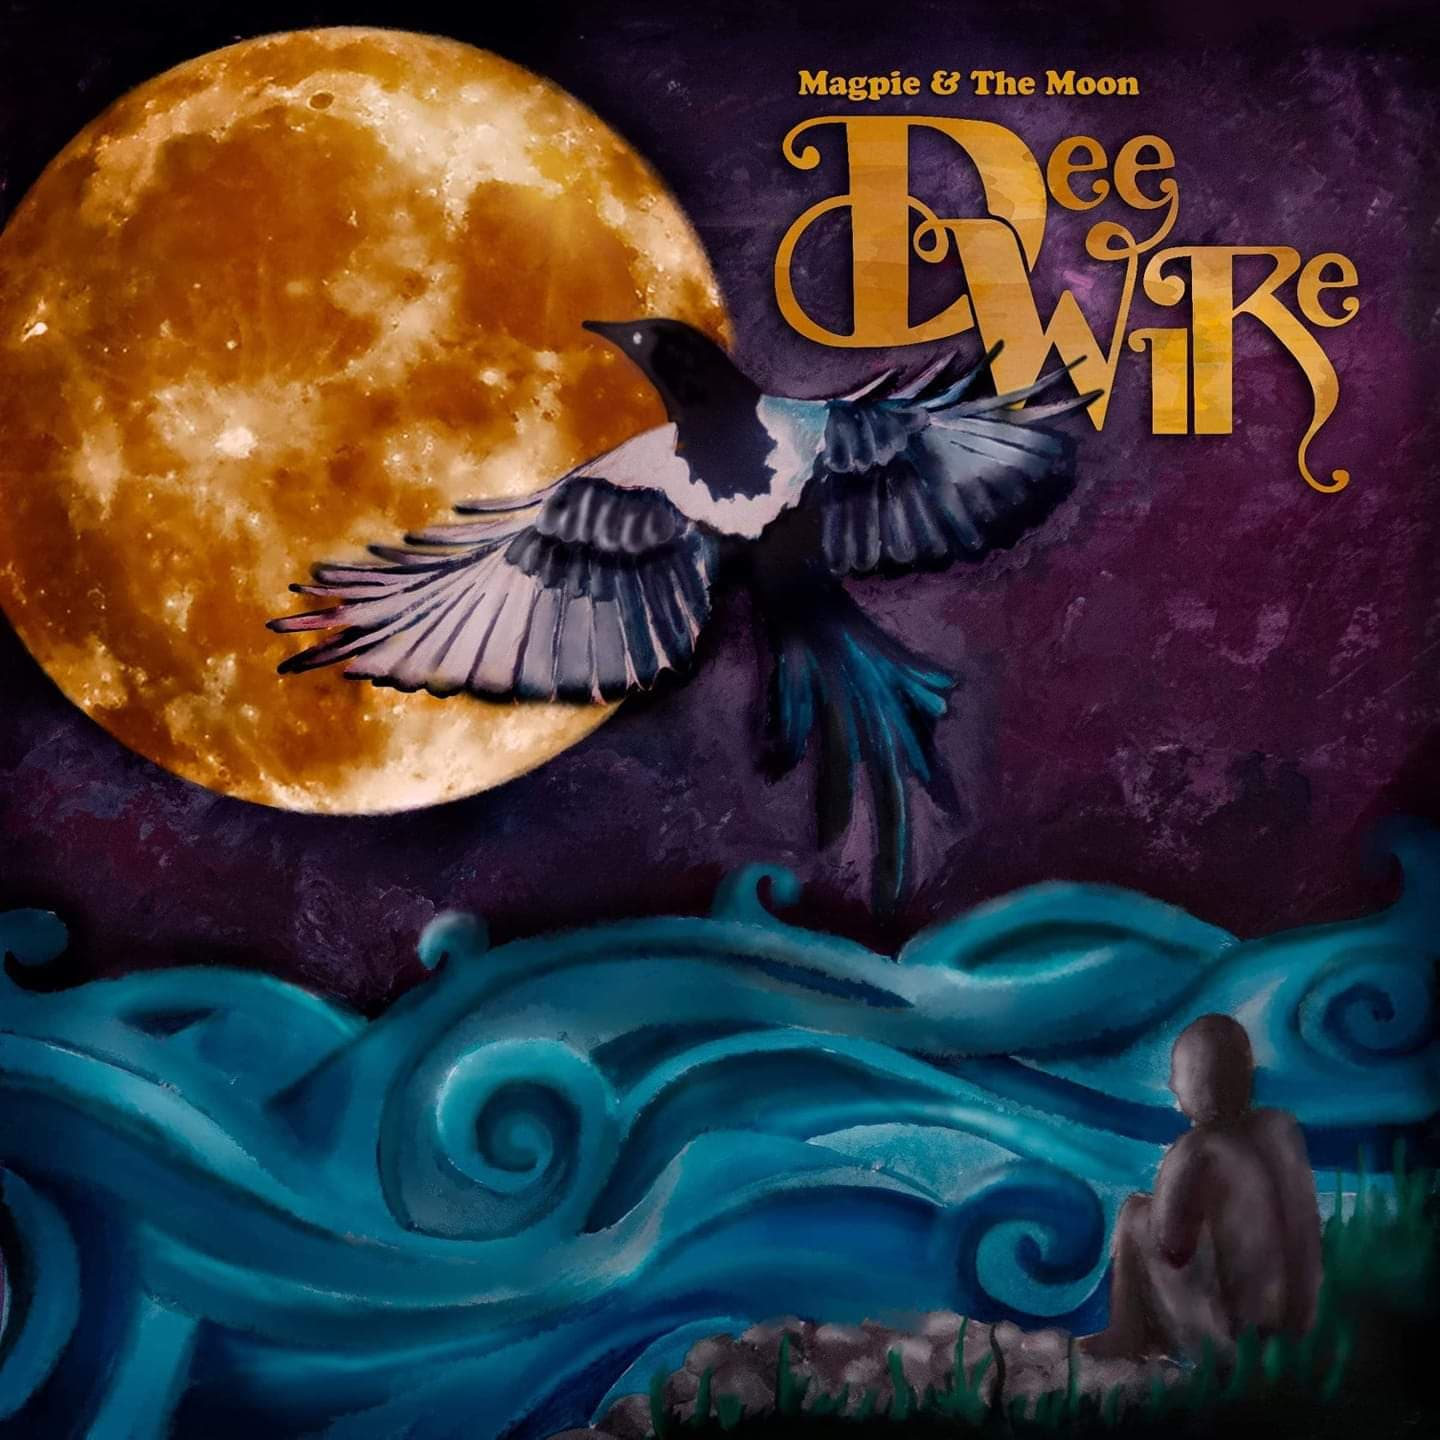 Dee Wire - Magpie & the Moon EP Recorded @ Dans Studio Produced/Mix/Master/Engineer - Dan Frizza